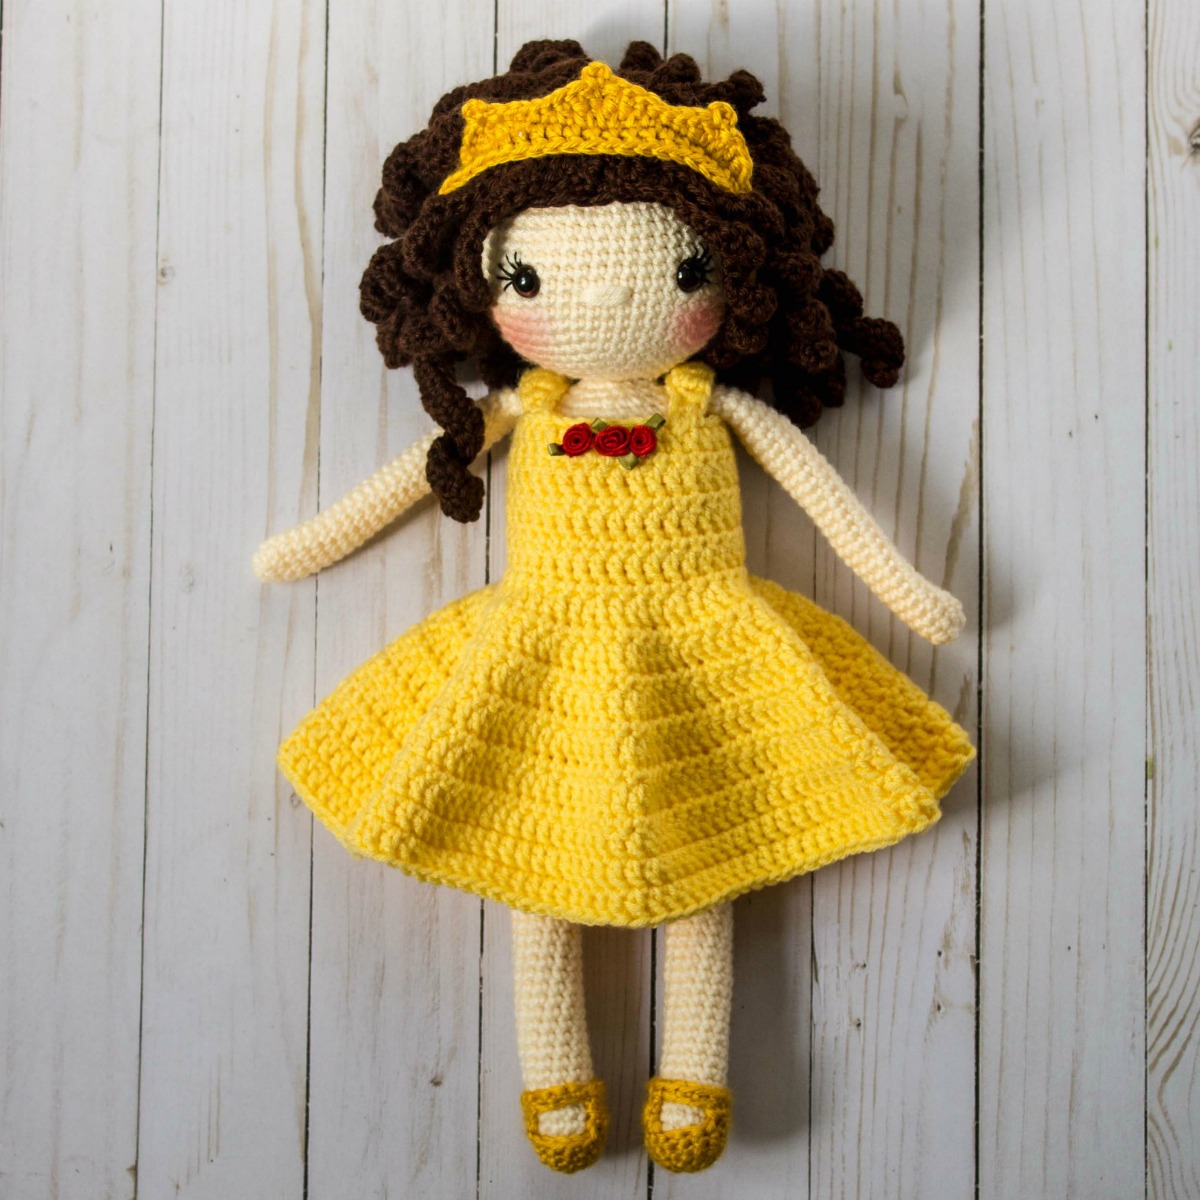 Quick Large Crochet Doll Patterns to Choose Free Crochet Doll Pattern The Friendly Sophie Thefriendlyredfox